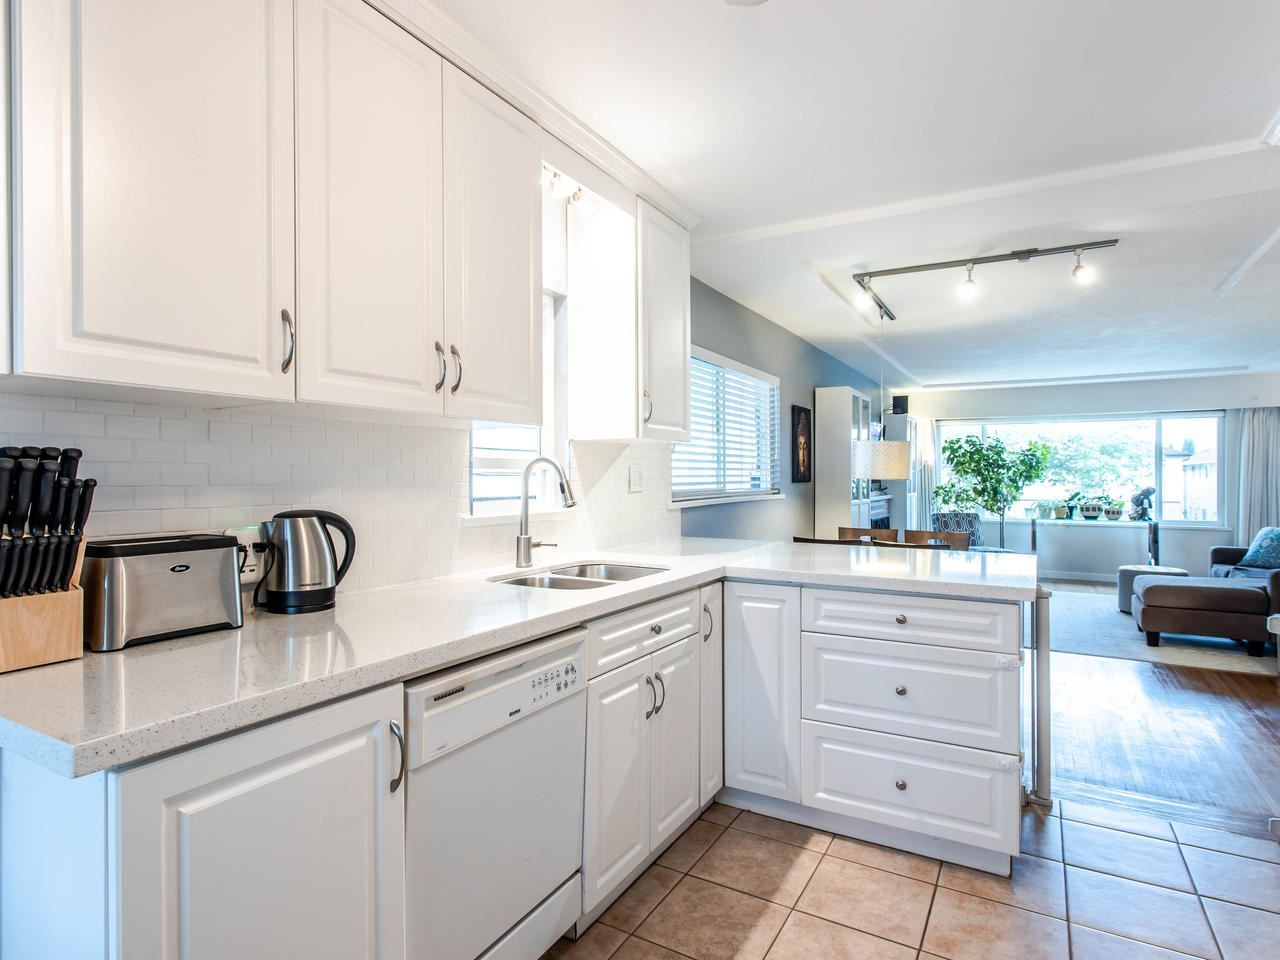 Photo 8: Photos: 4653 UNION STREET in Burnaby: Capitol Hill BN House for sale (Burnaby North)  : MLS®# R2493161